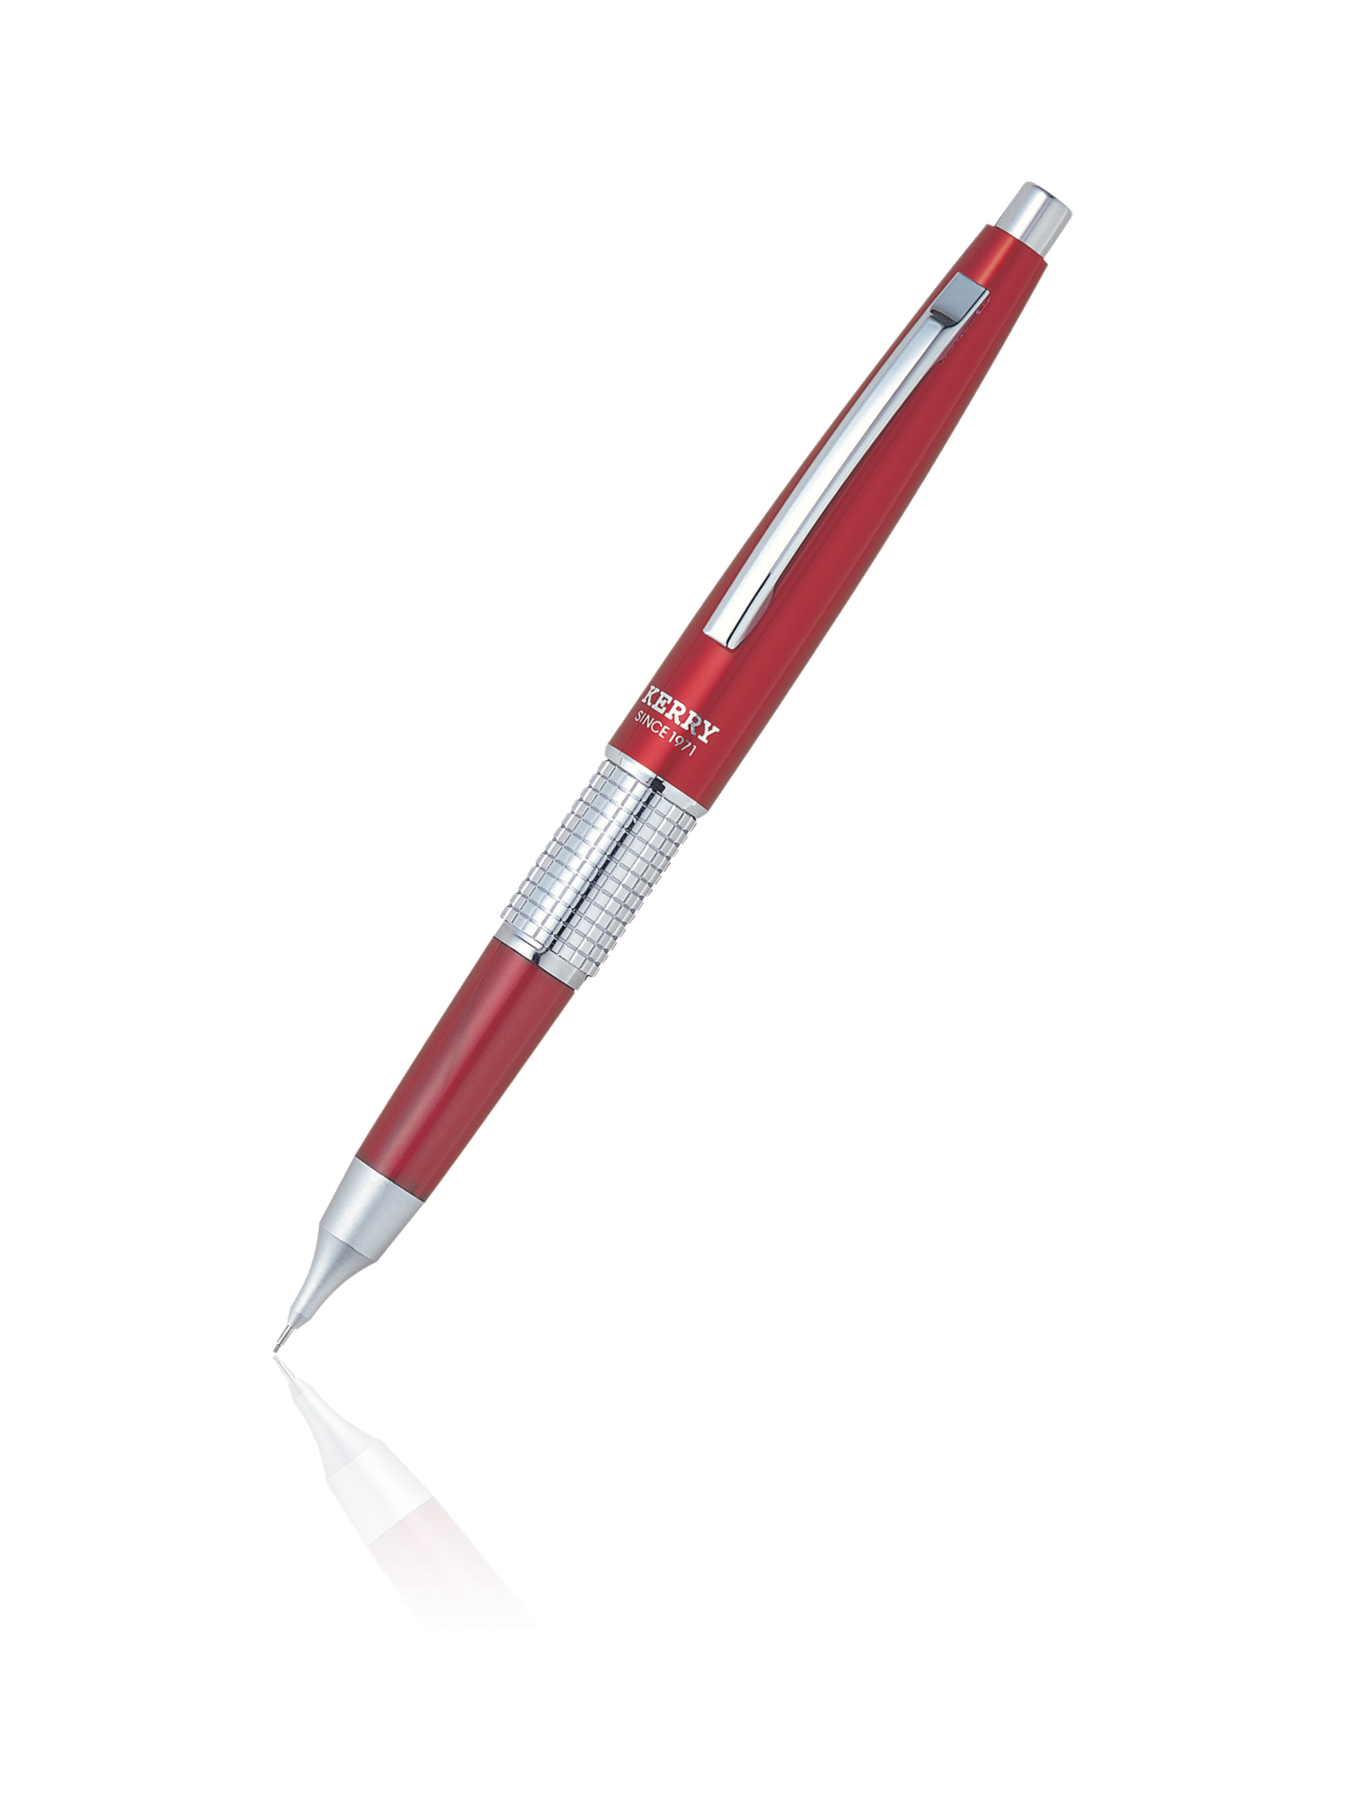 Pentel Sharp Kerry